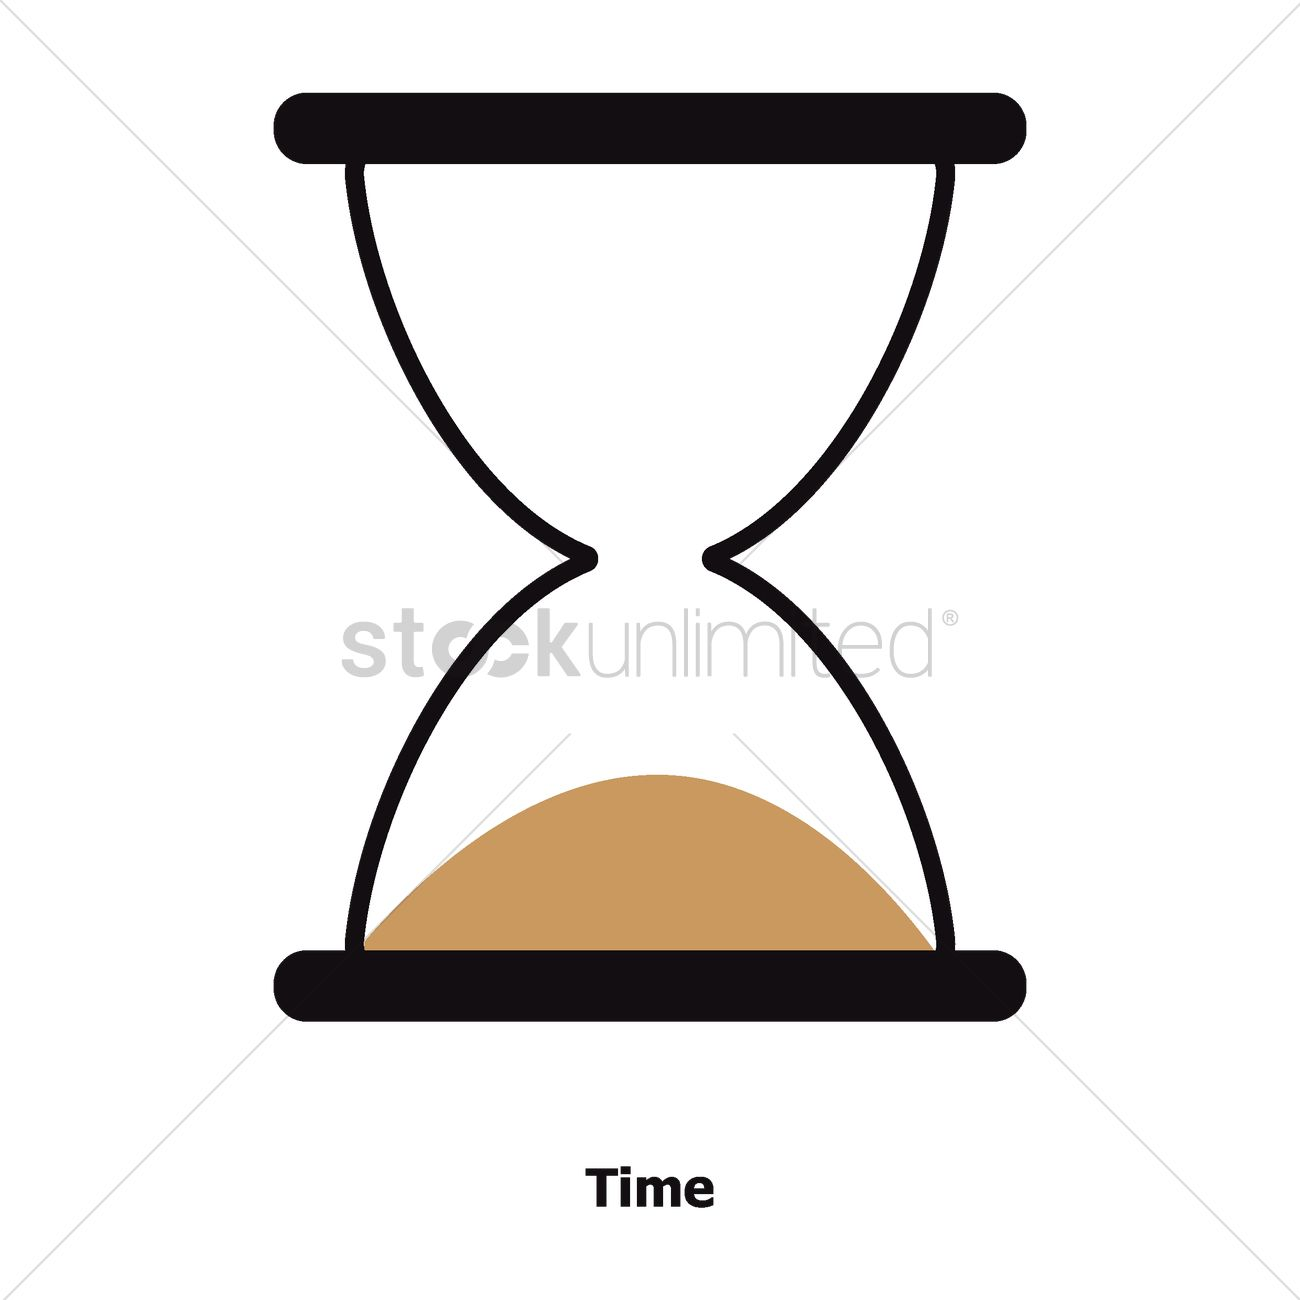 free hourglass vector image 1582859 stockunlimited rh stockunlimited com hourglass vector free hourglass vector free download